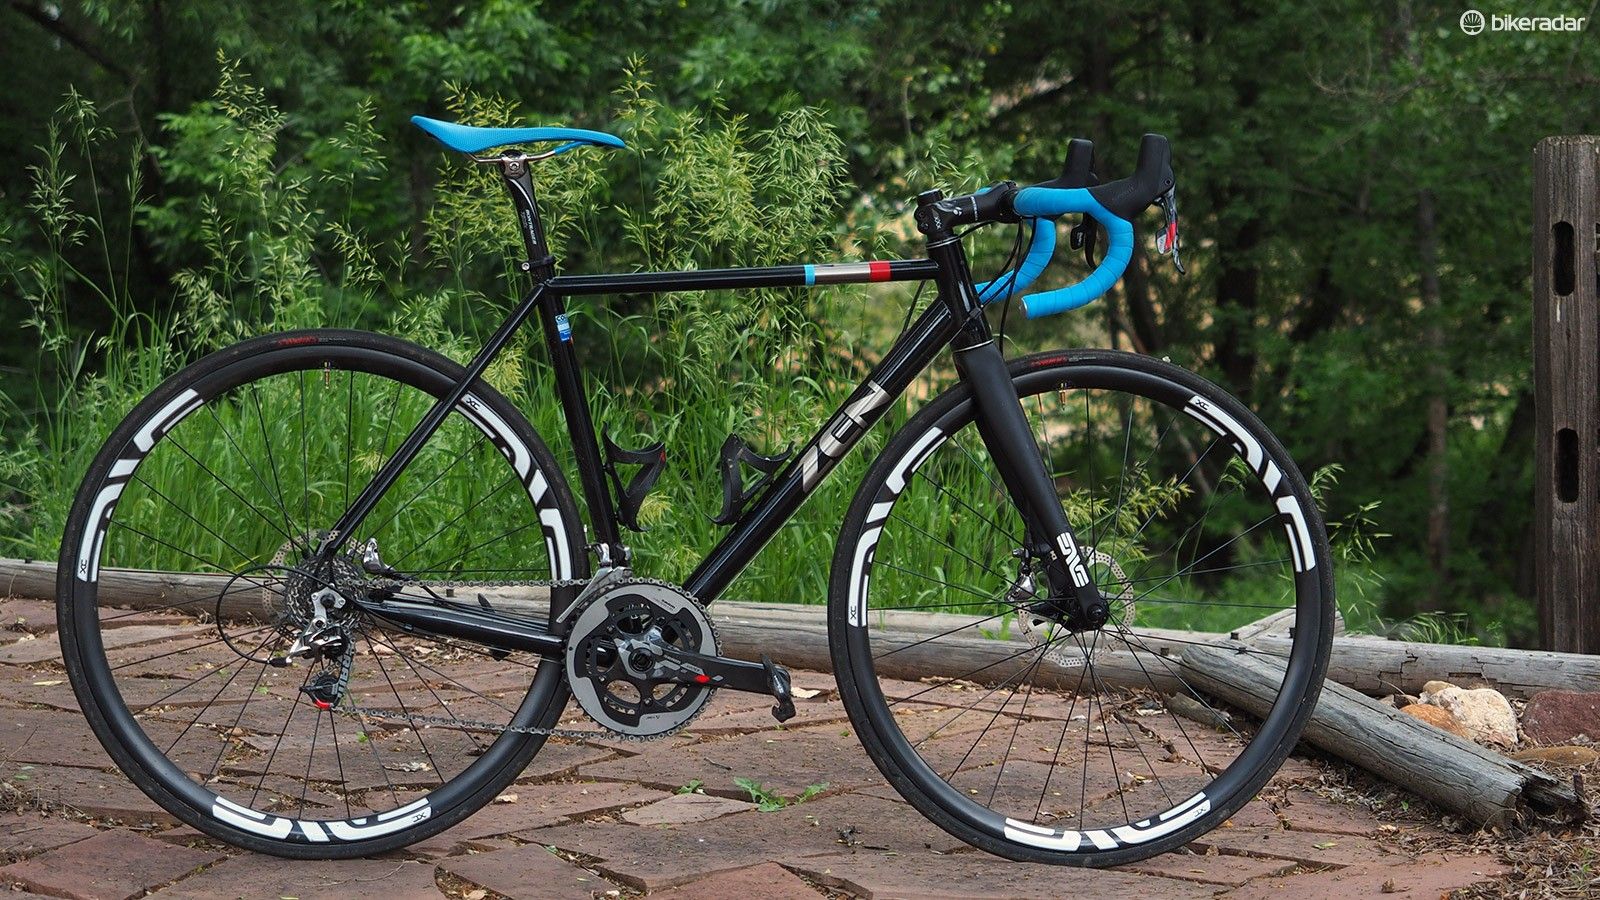 Zen's simply named ROAD frameset offers up the classic ride of high-quality steel but with modern features like disc brakes and optional thru-axle dropouts